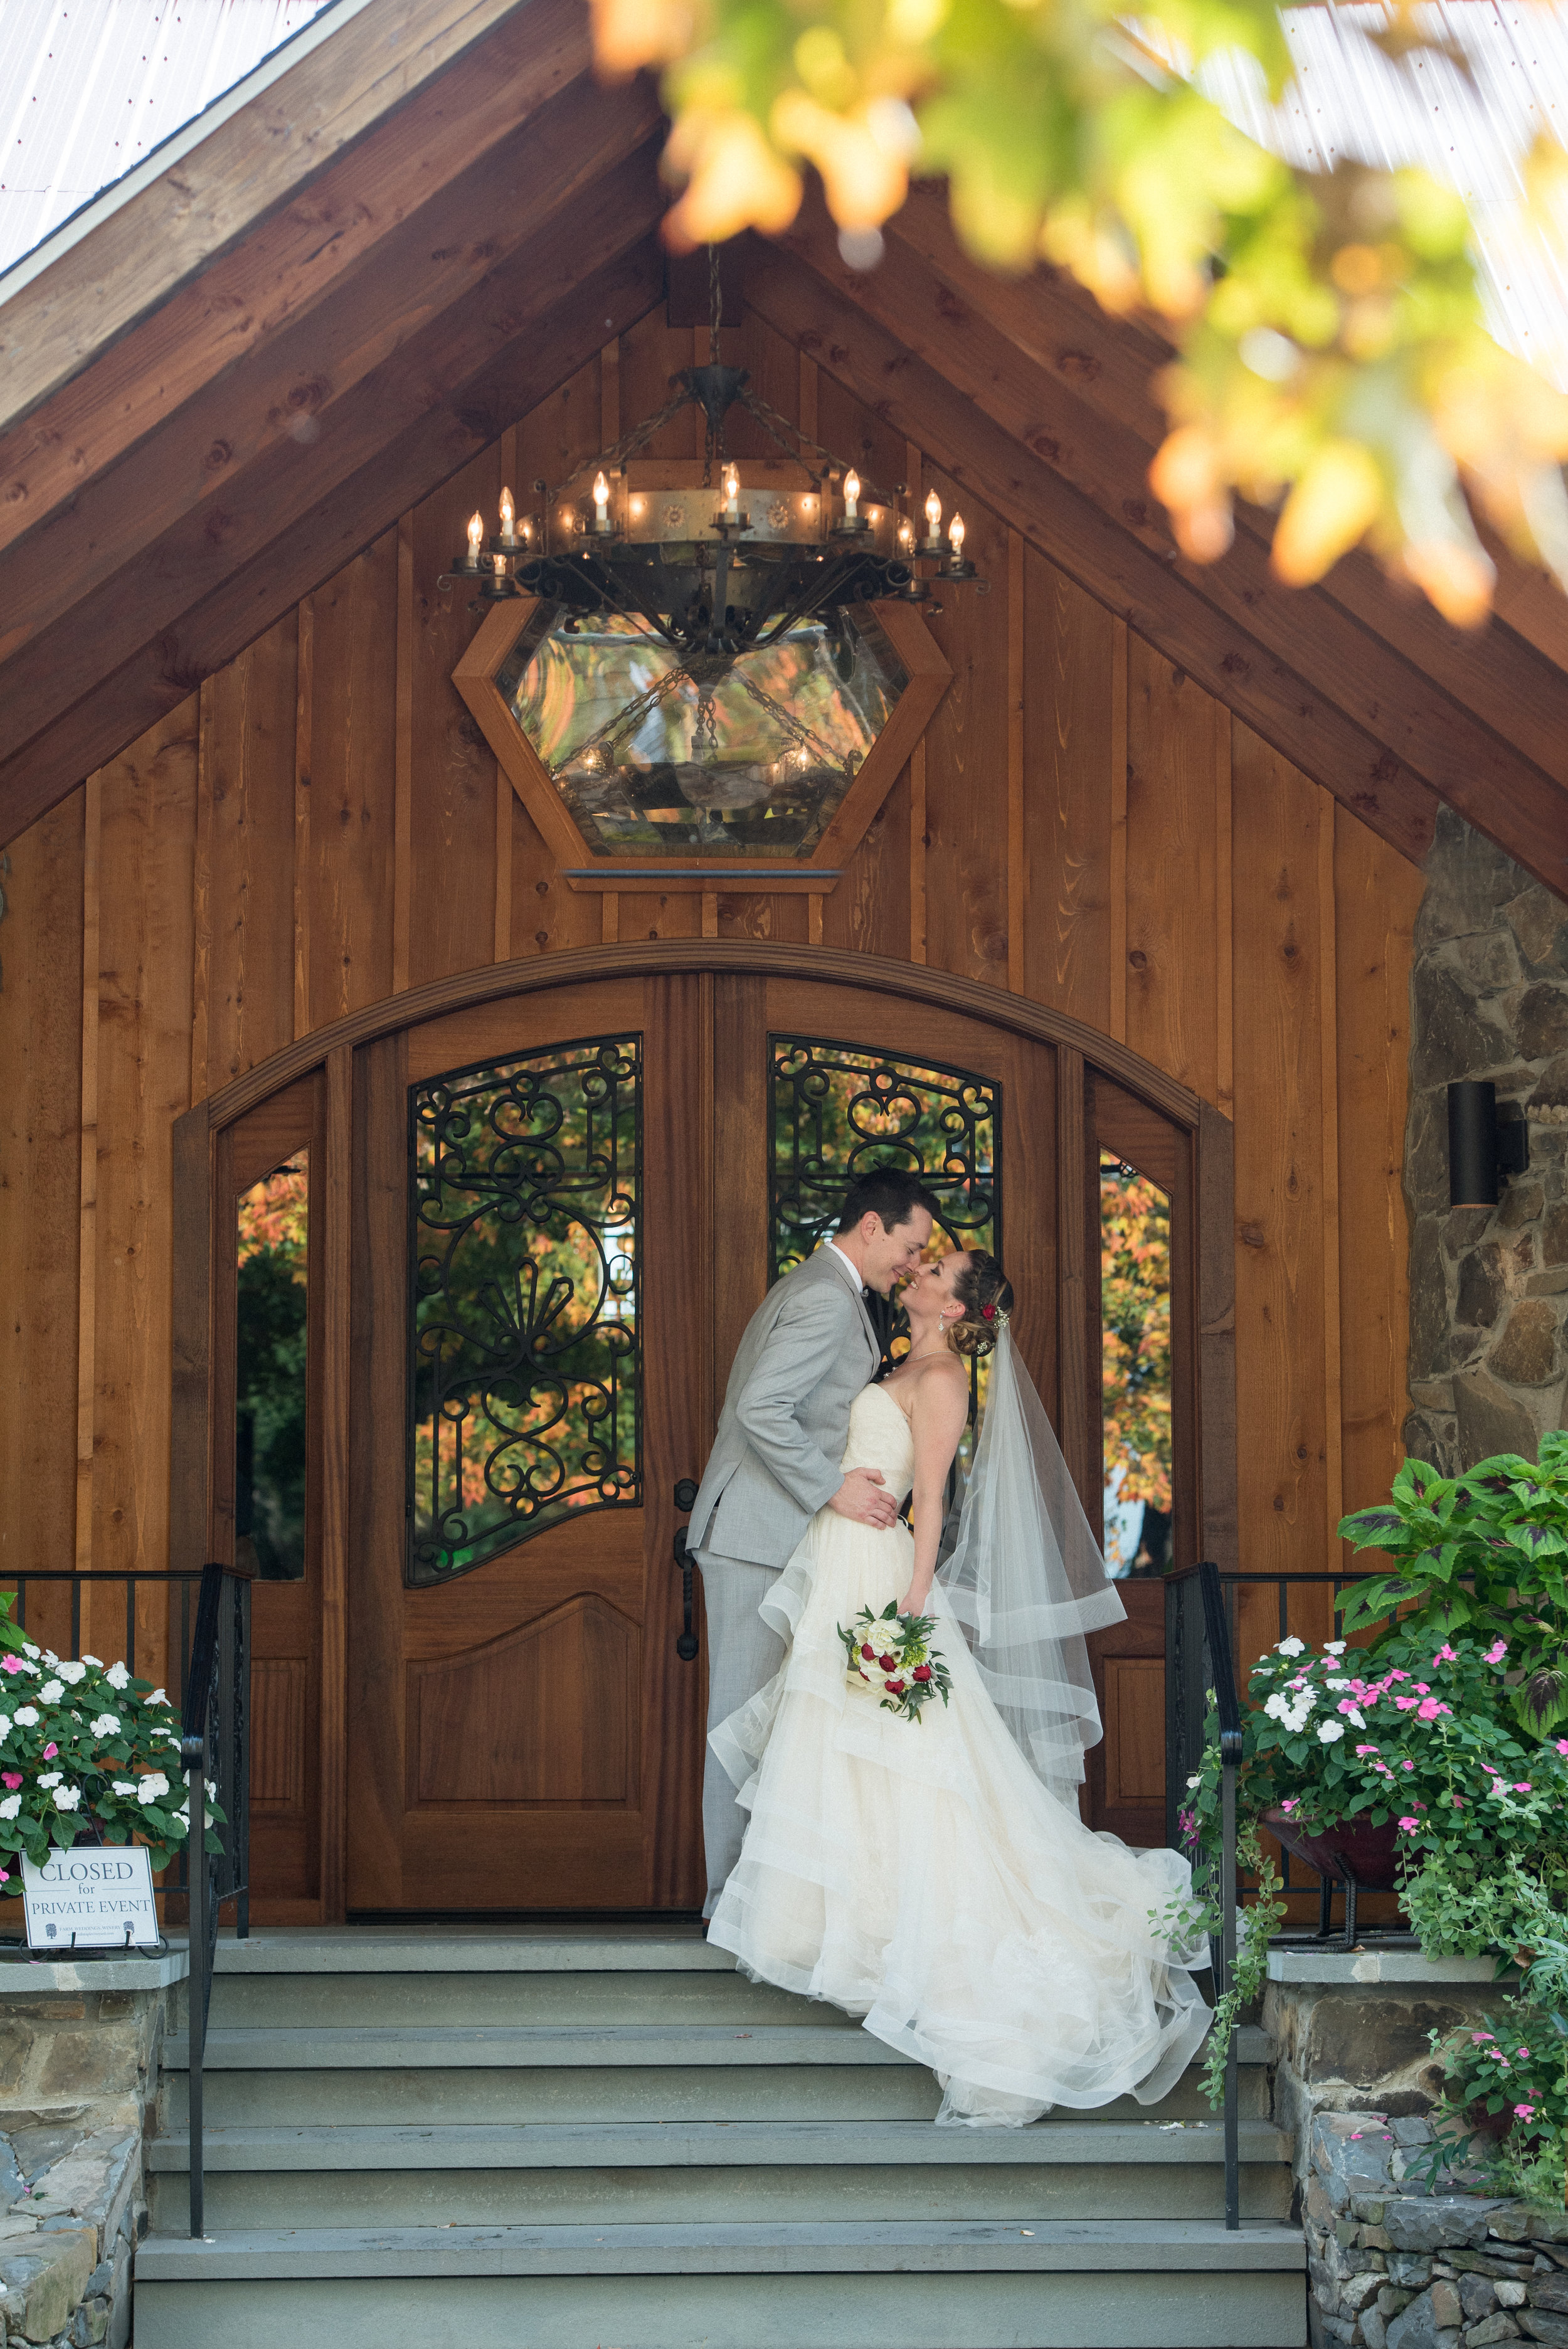 Stilwell Photography. Kristin & Joseph 10.8.17 Wedding-2042.JPG